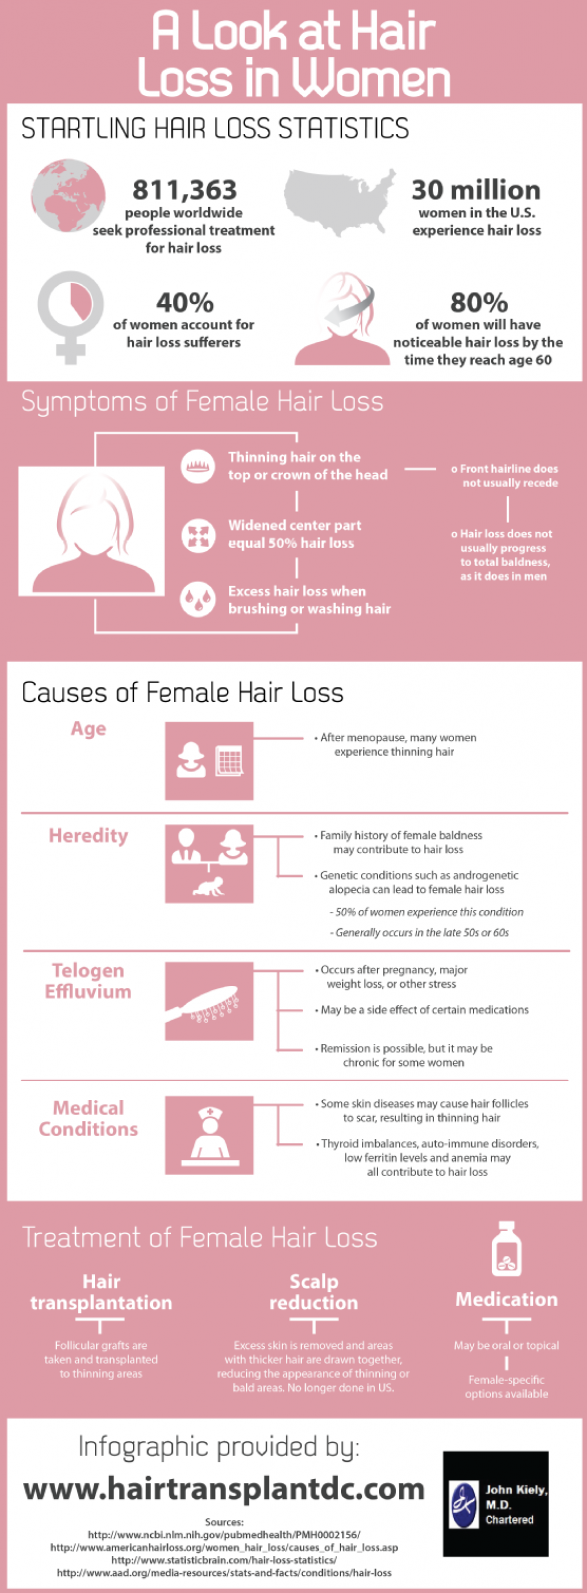 A Look at Hair Loss in Women